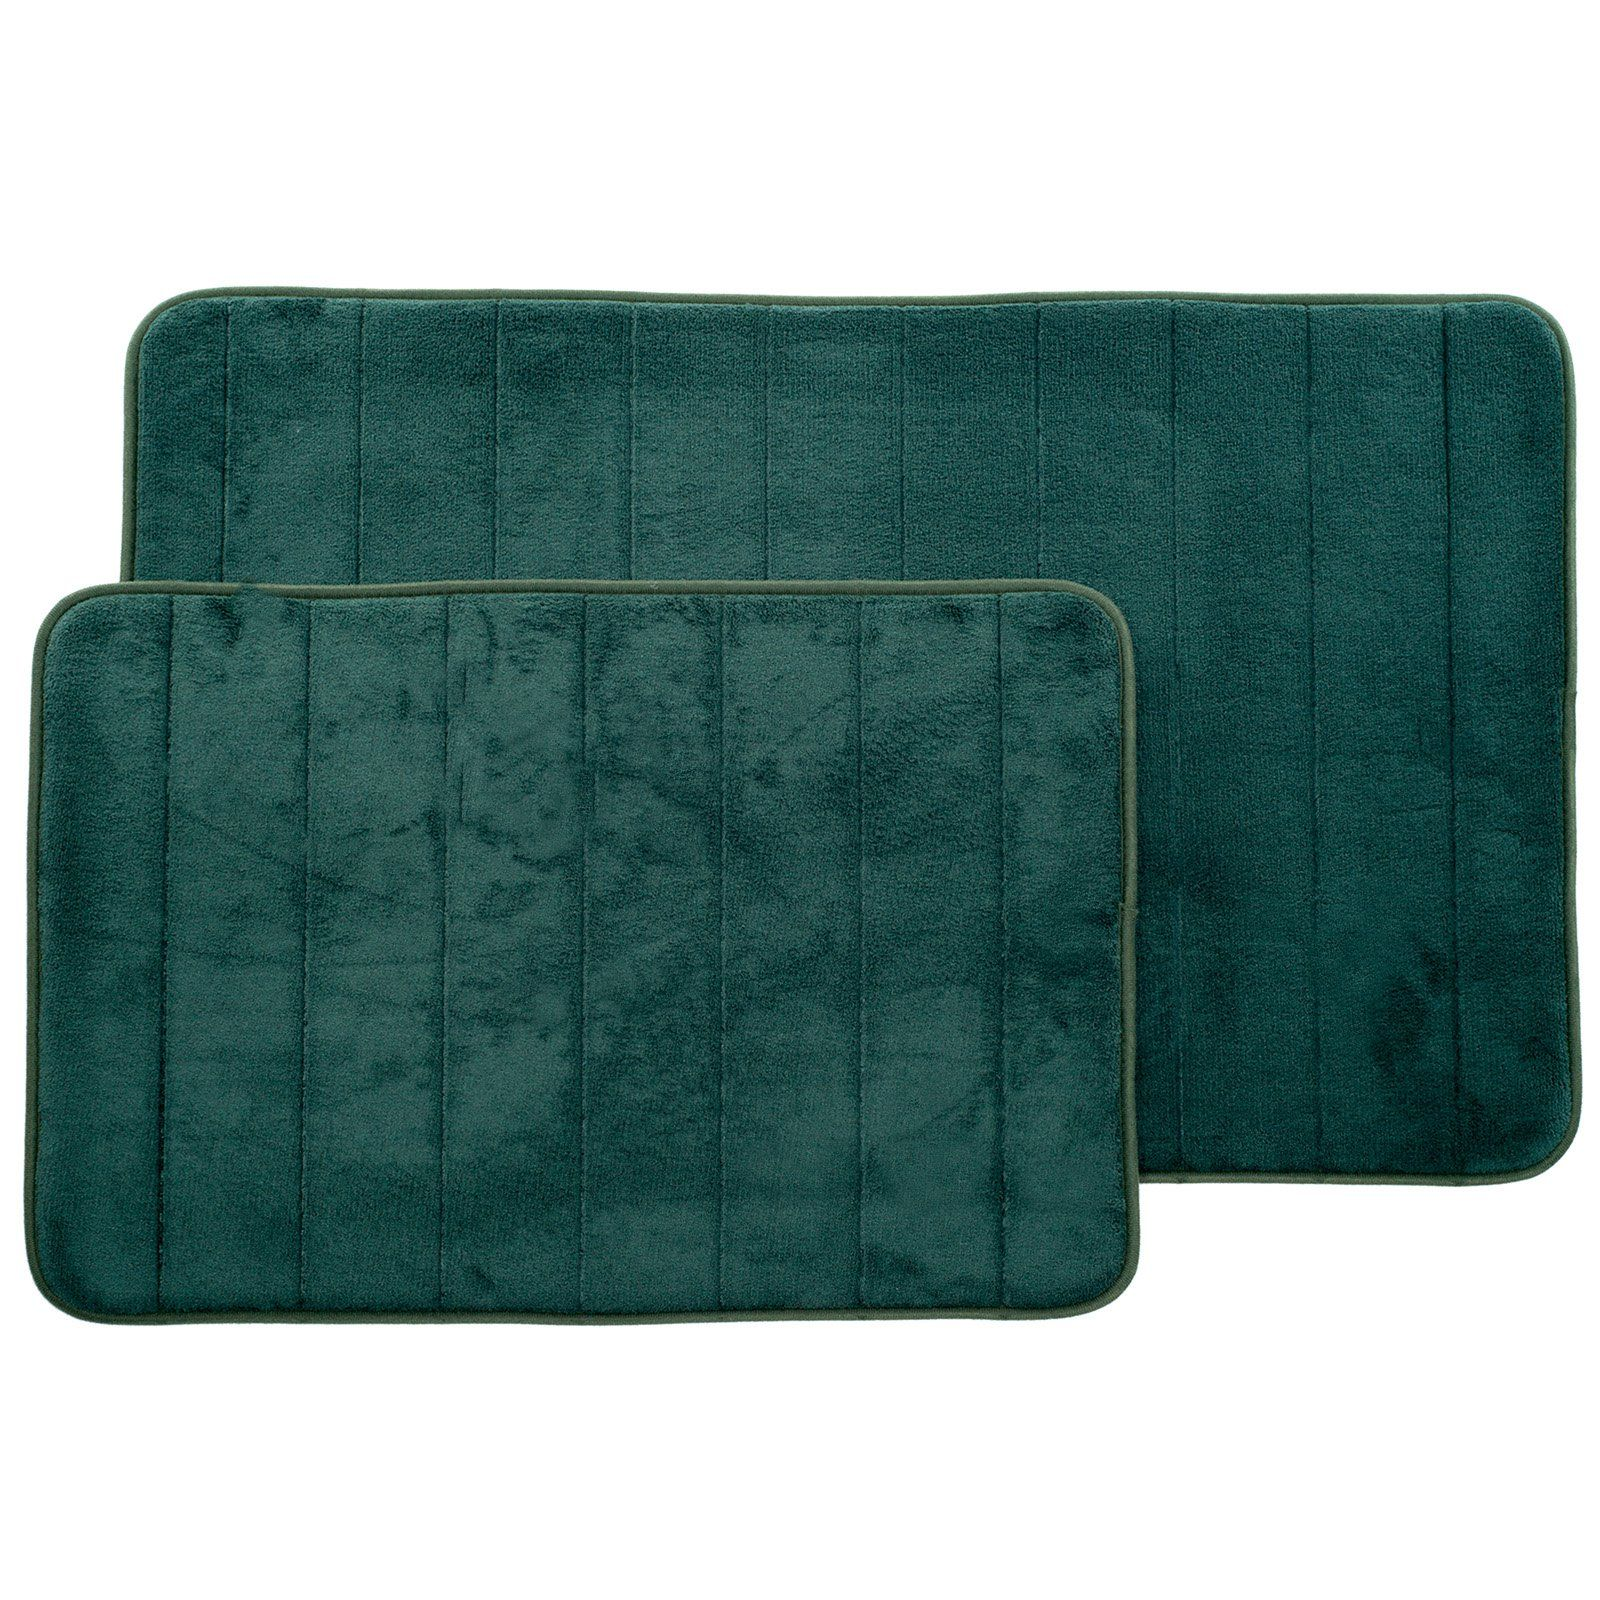 Lavish Home Memory Foam Striped Bath Mat Set Set Of 2 Green